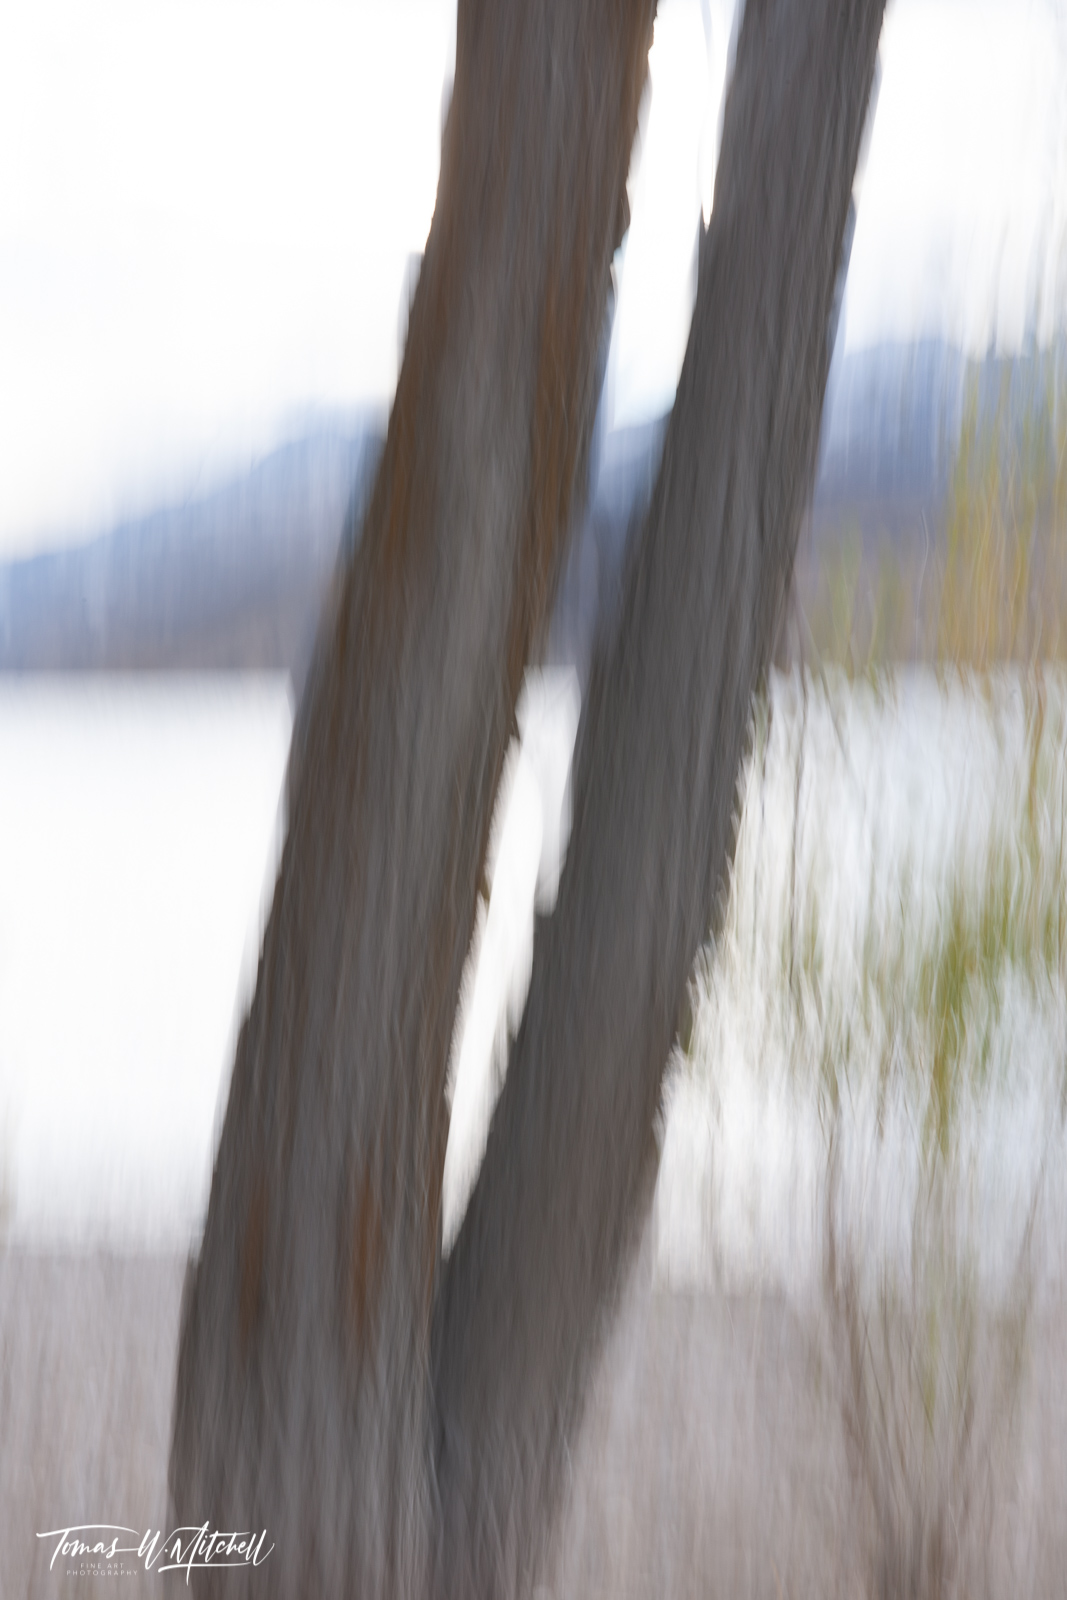 Limited Edition of 10 Museum Grade, Fine Art Prints This photograph is part of my 'Deer Creek Trees' Series. I love the graceful...